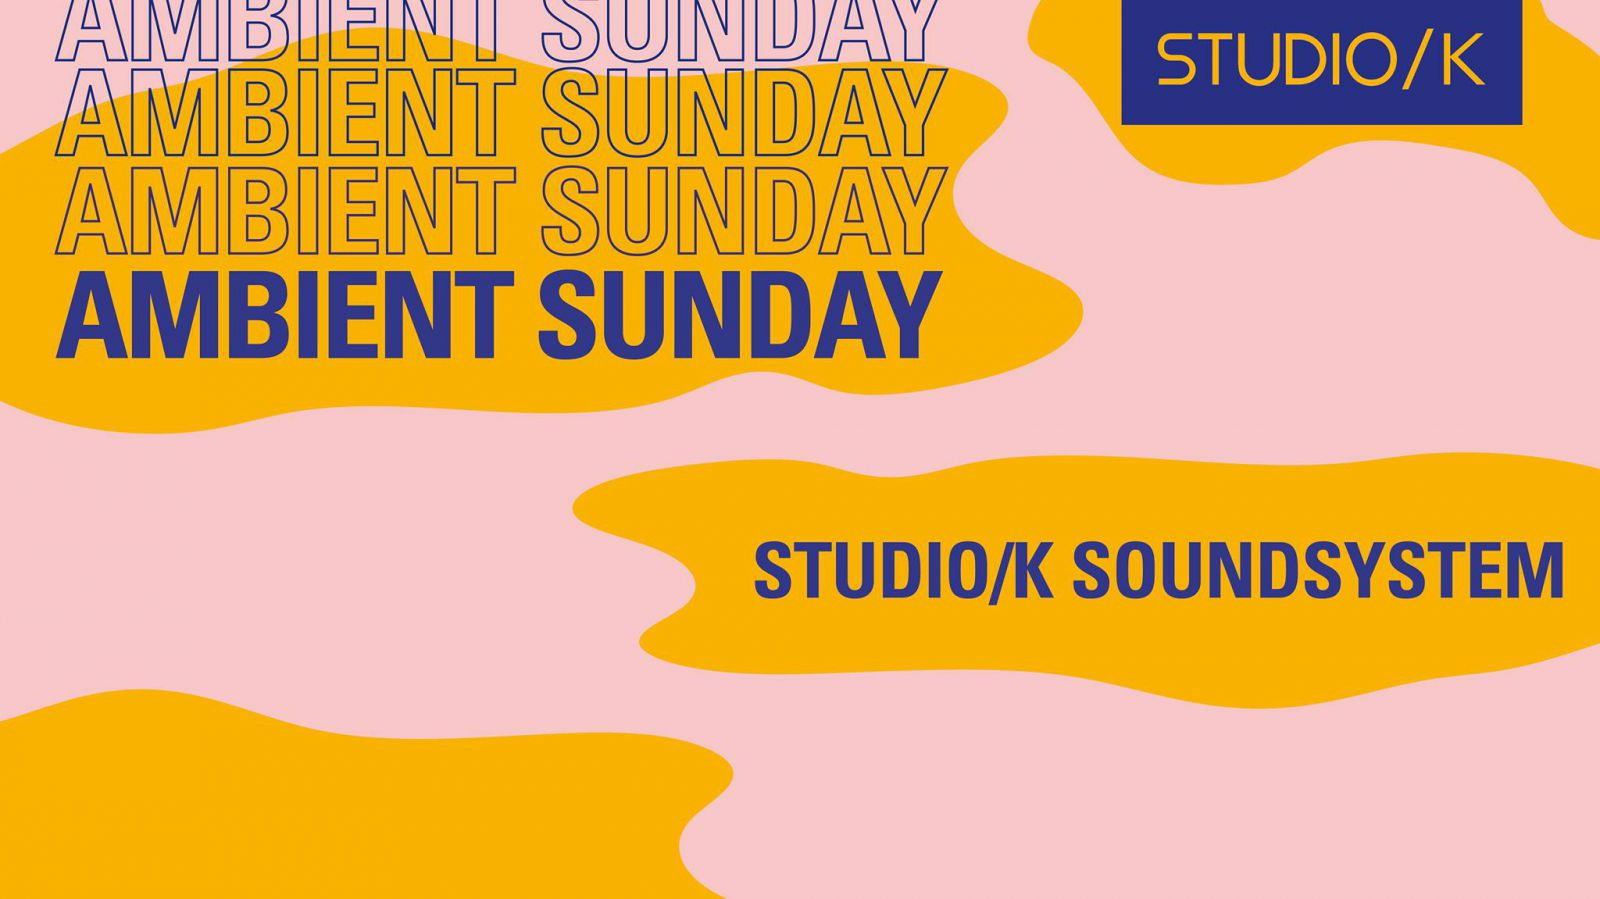 Ambient Sunday | Studio/K Soundsystem